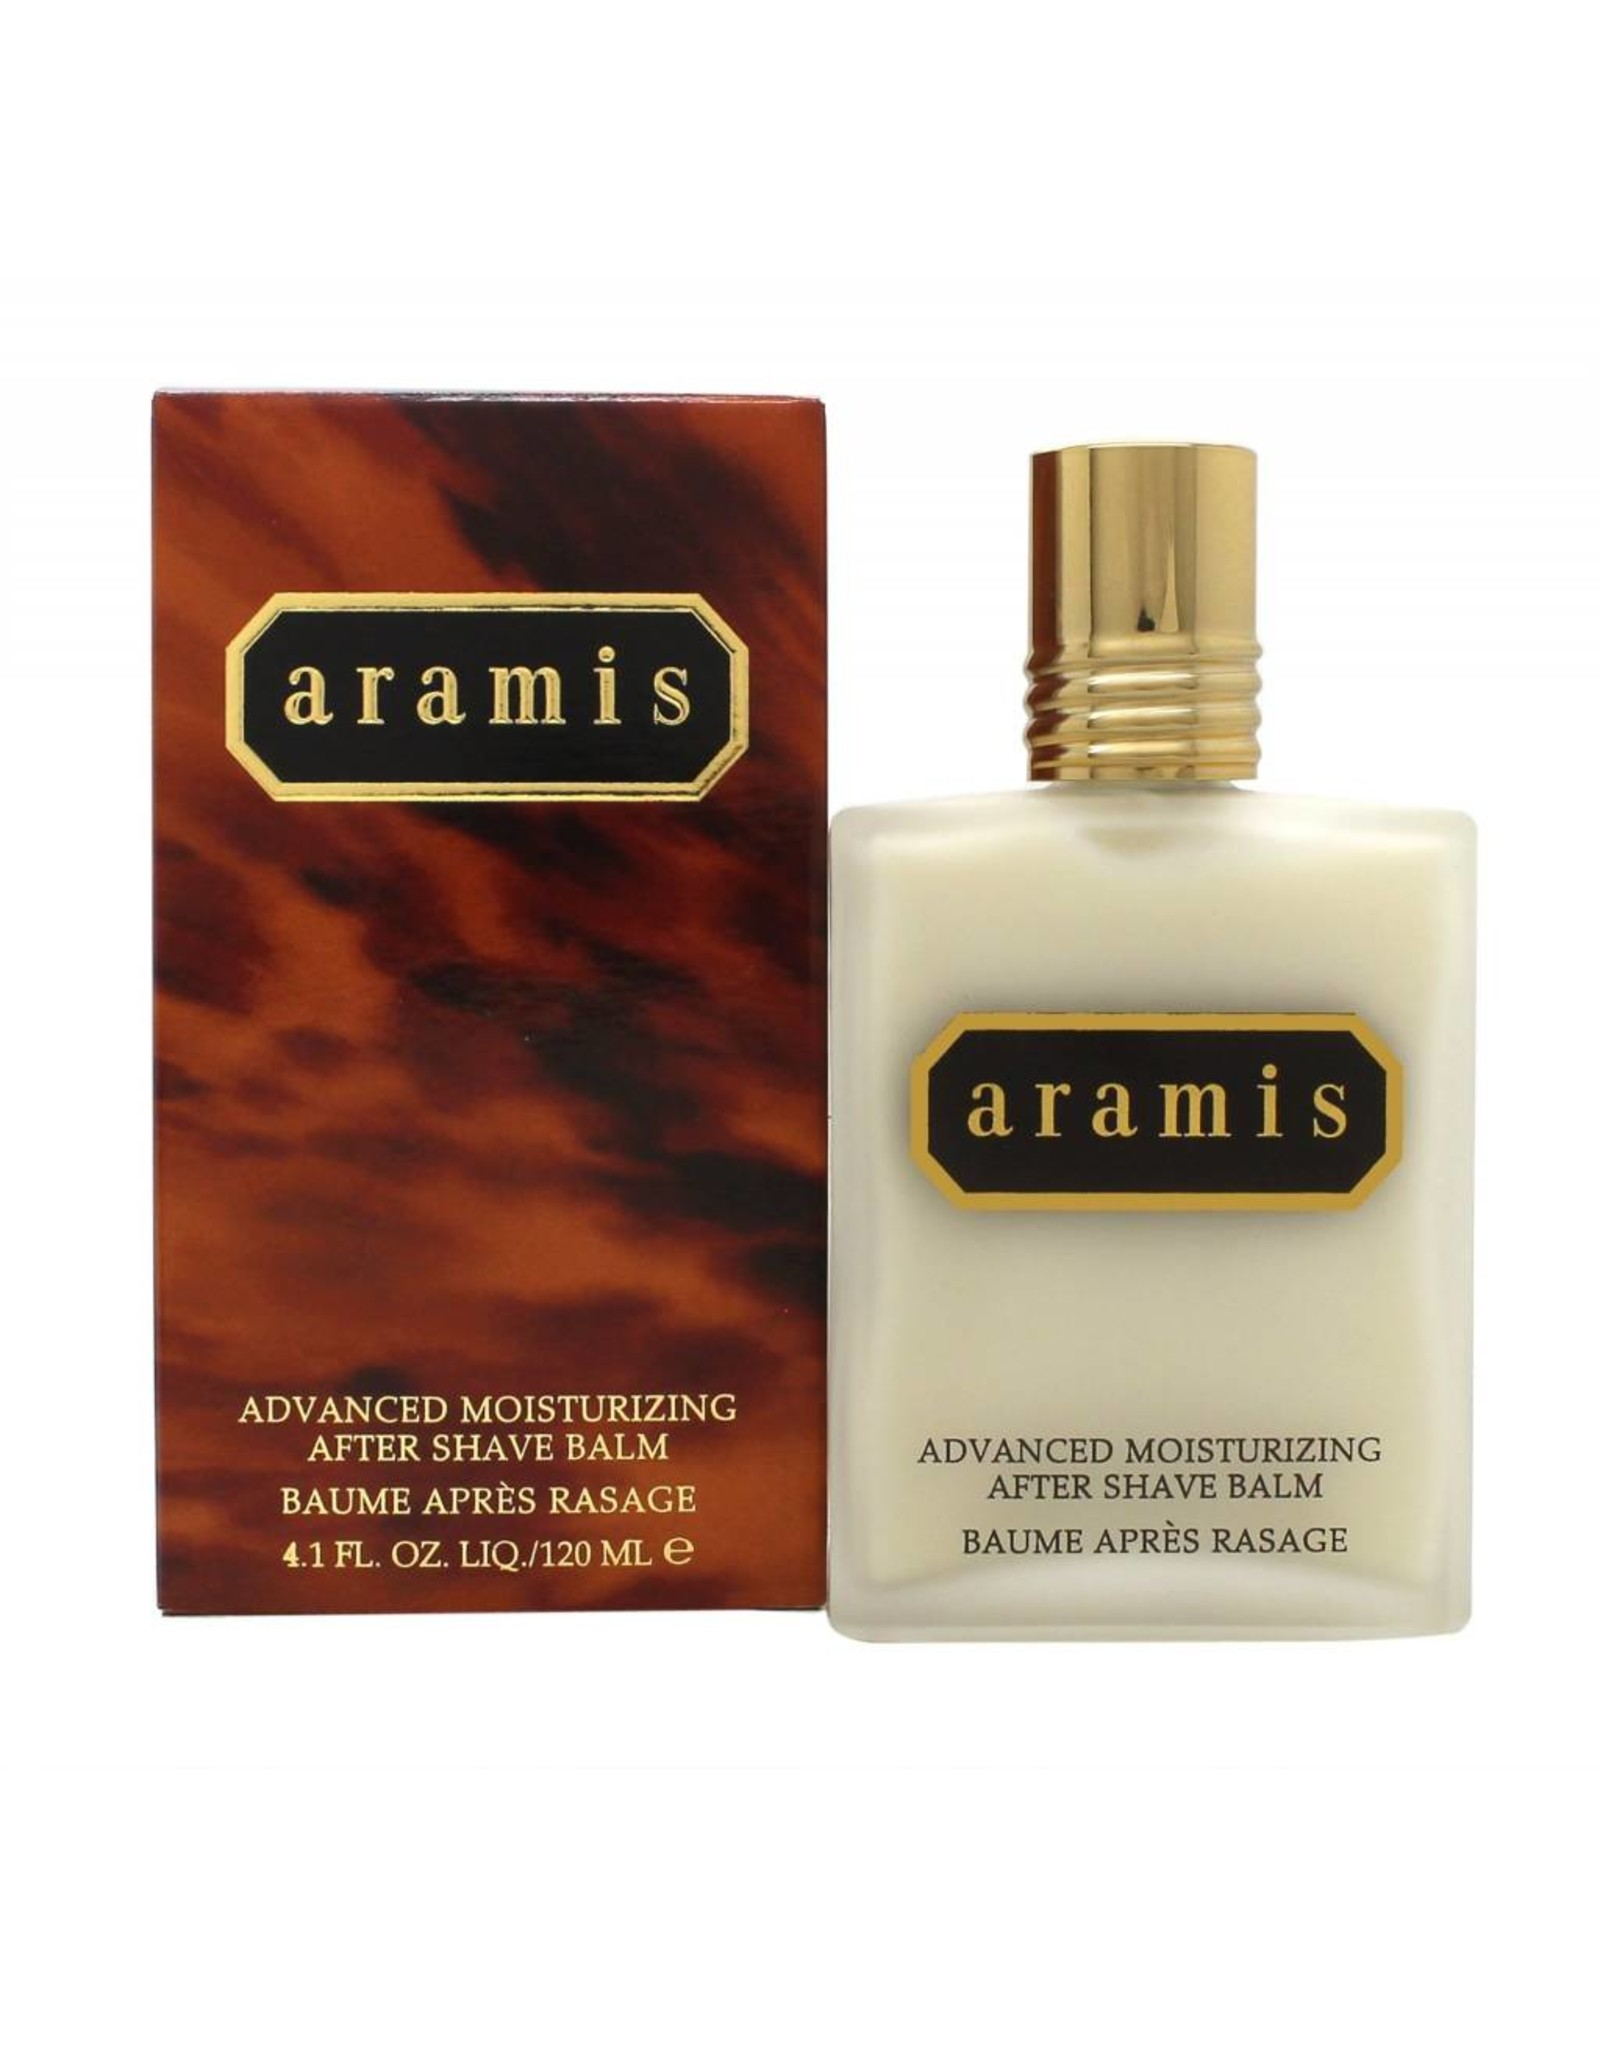 ARAMIS ARAMIS ARAMIS ADVANCED MOISTURIZING BAUME APRES RASSAGE